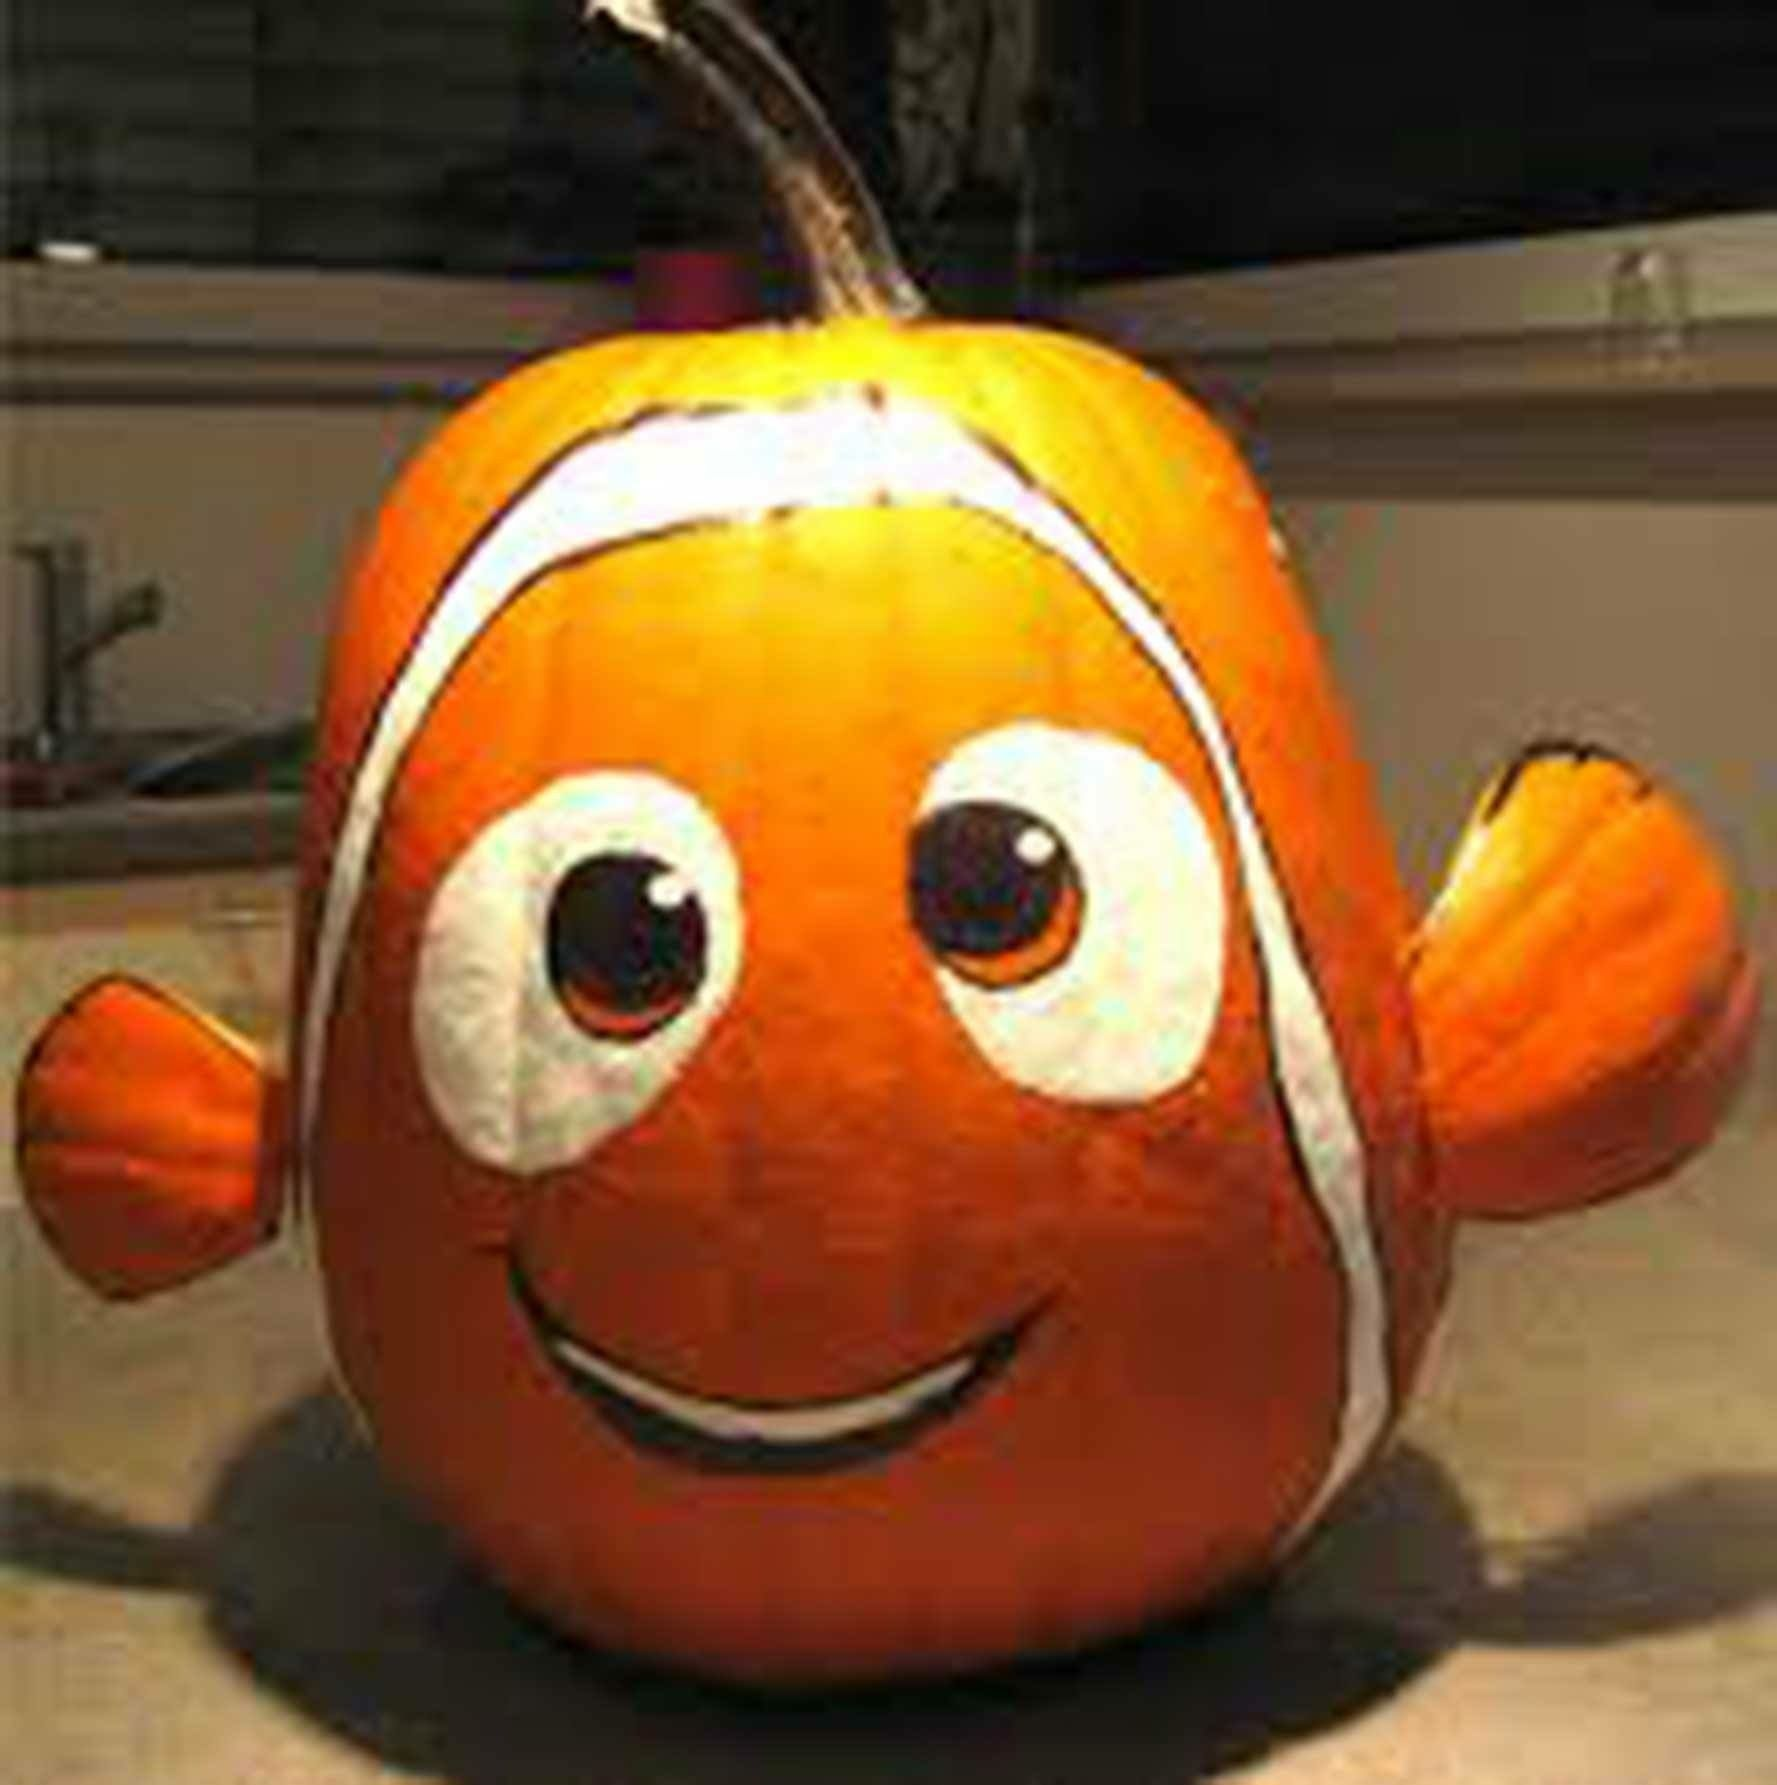 Jen I thought of Ryan and his stuffed Nemo he loved sooo much!these are the  BEST Carved & Decorated Pumpkin ideas for Halloween!